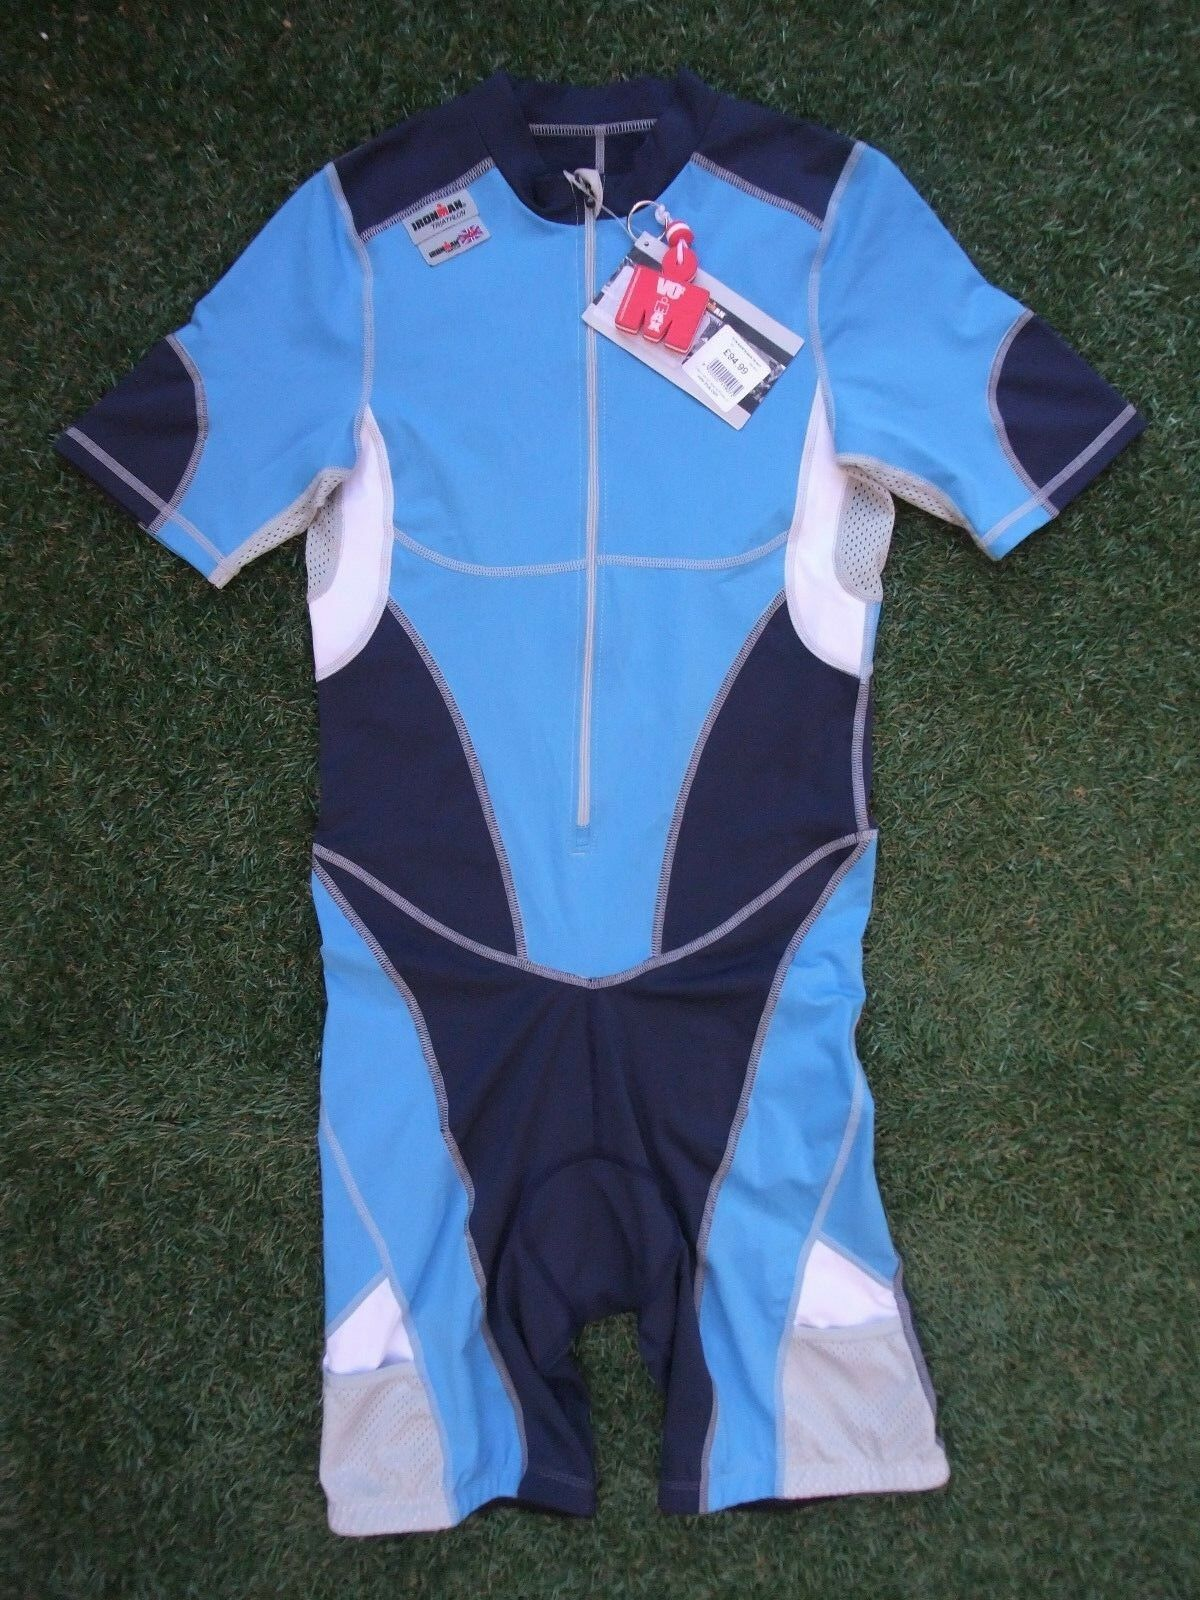 BNWT Ironman VO2 Max Triathlon Tri S Sleeved Speed Skin Suit Small  Cost